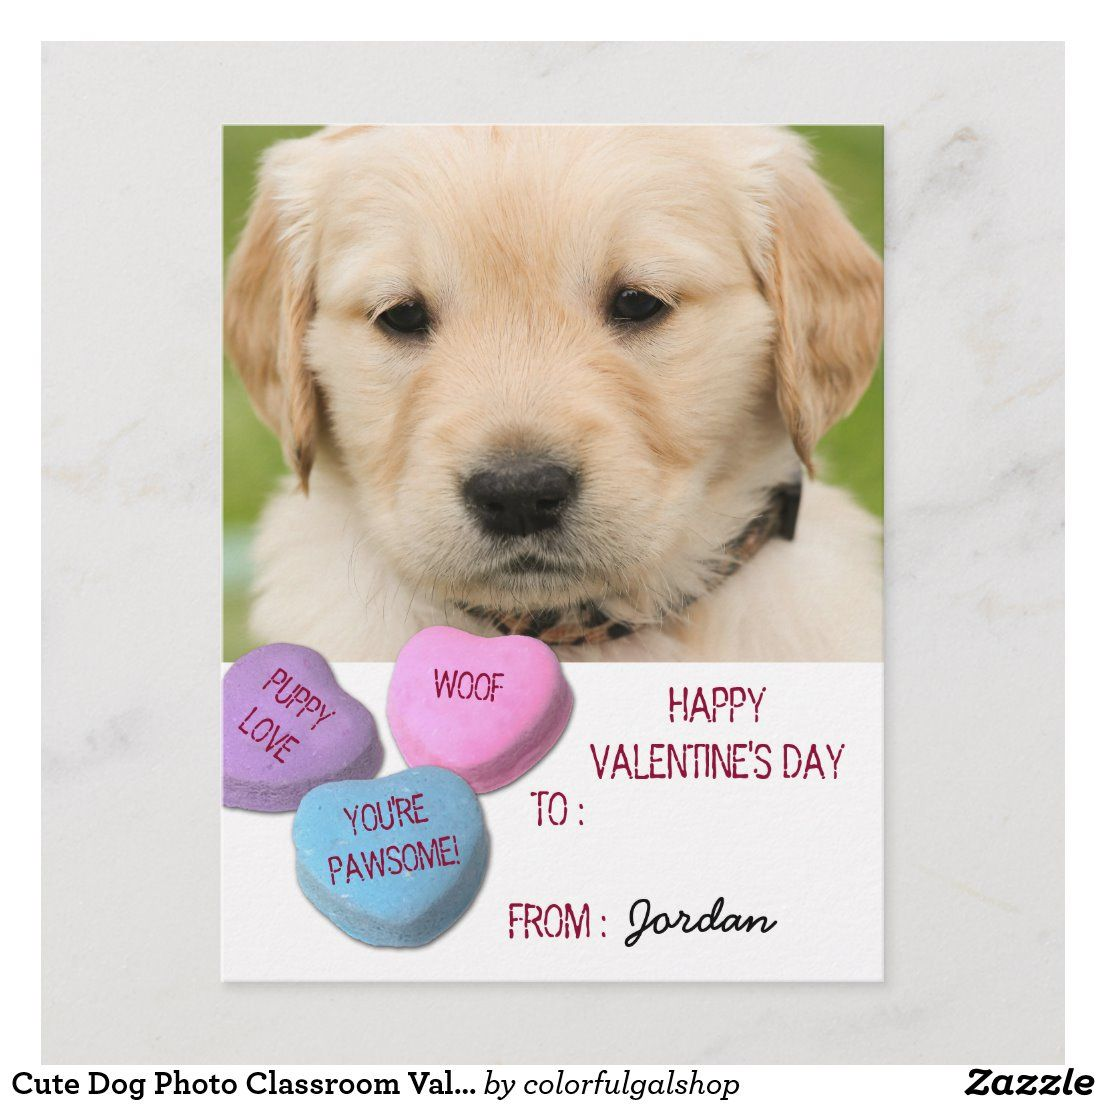 Cute Dog Photo Classroom Valentine Candy Hearts Holiday Postcard Zazzle Com In 2020 Valentine Candy Hearts Cute Dog Photos Valentine Candy